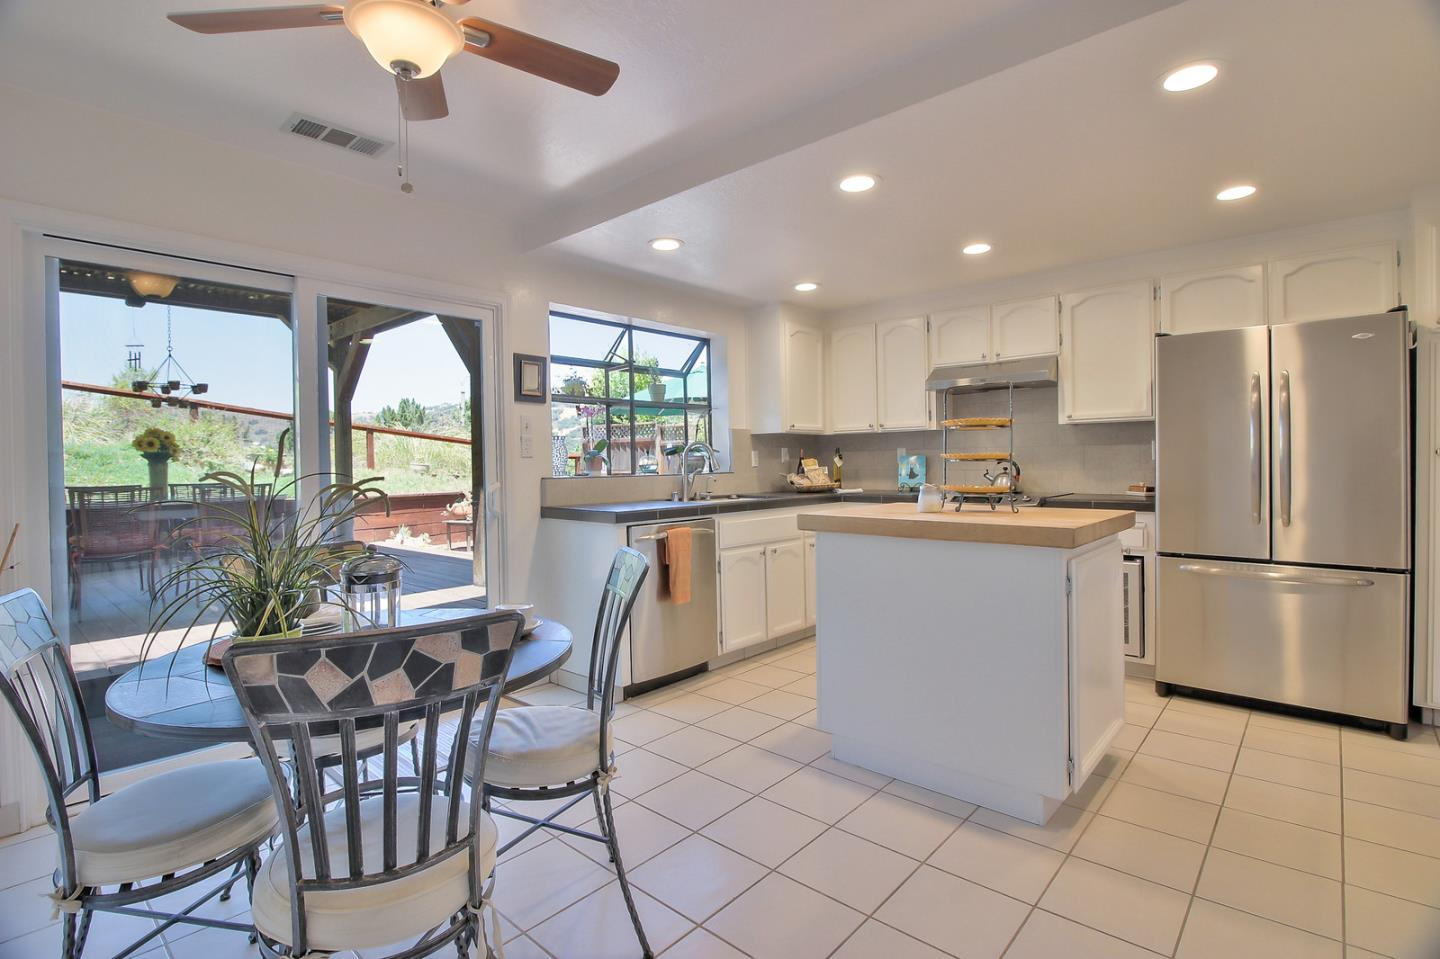 Additional photo for property listing at 16980 Helene Court  Morgan Hill, California 95037 United States